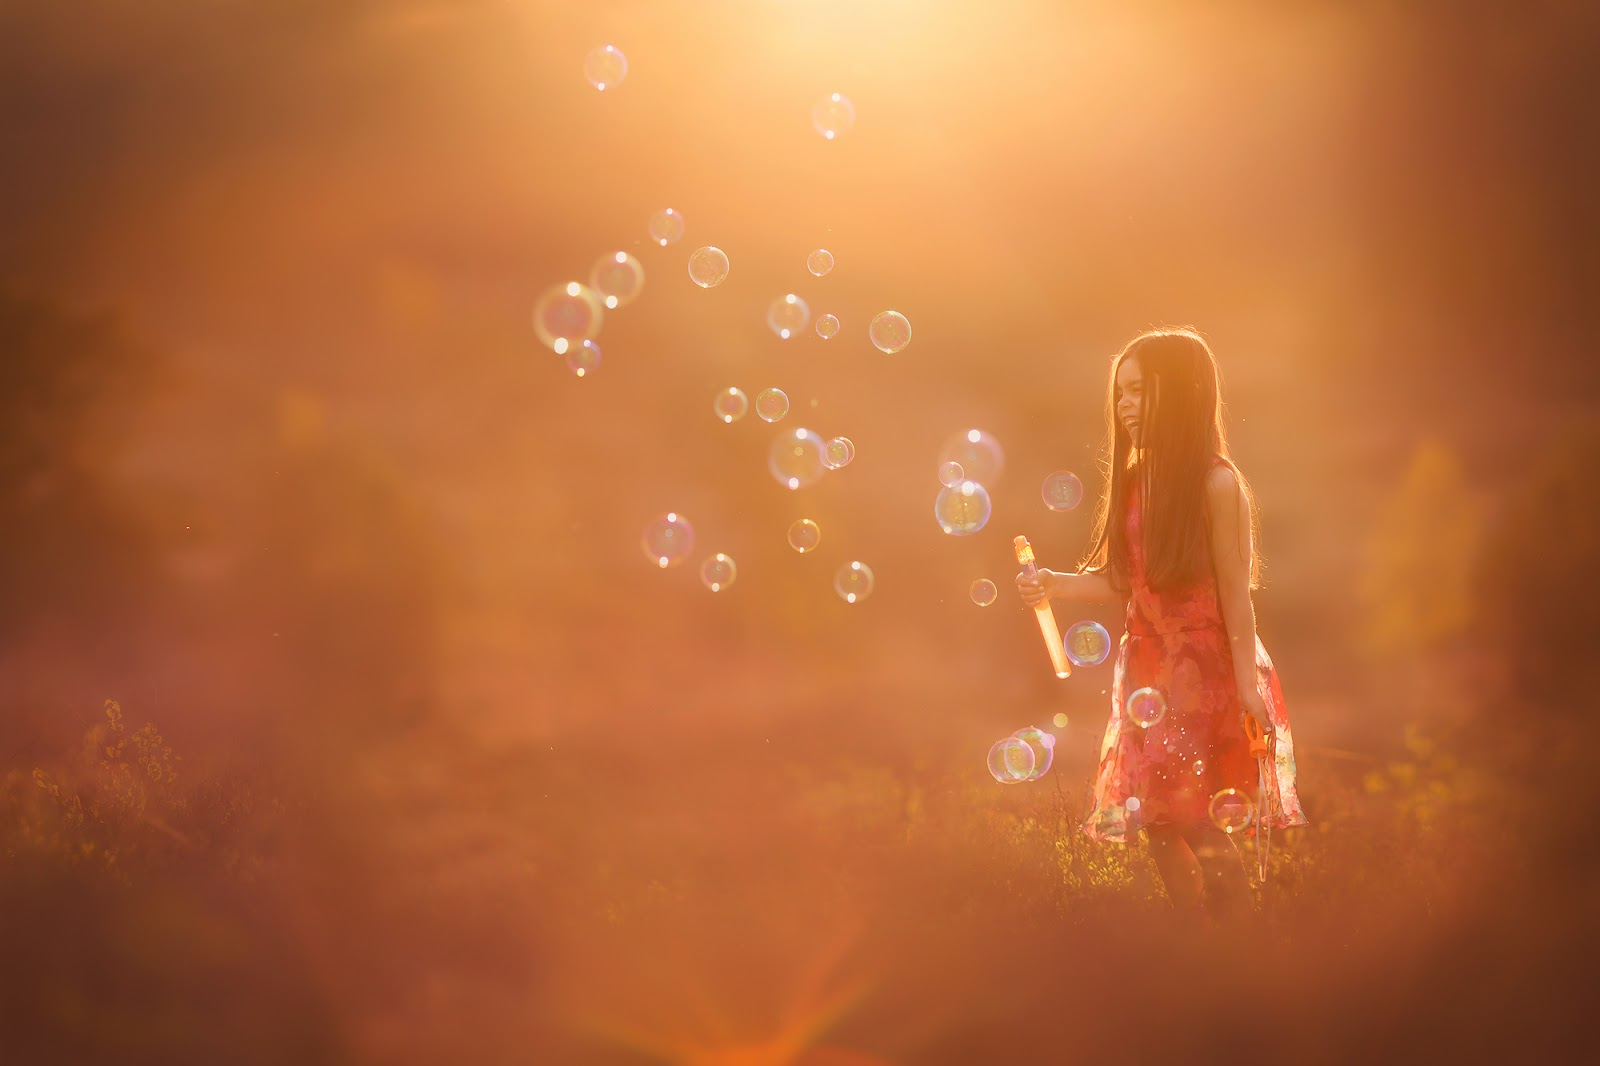 Canon color childhood portrait of a little girl having fun with a lot of bubbles in sunset by Willie Kers